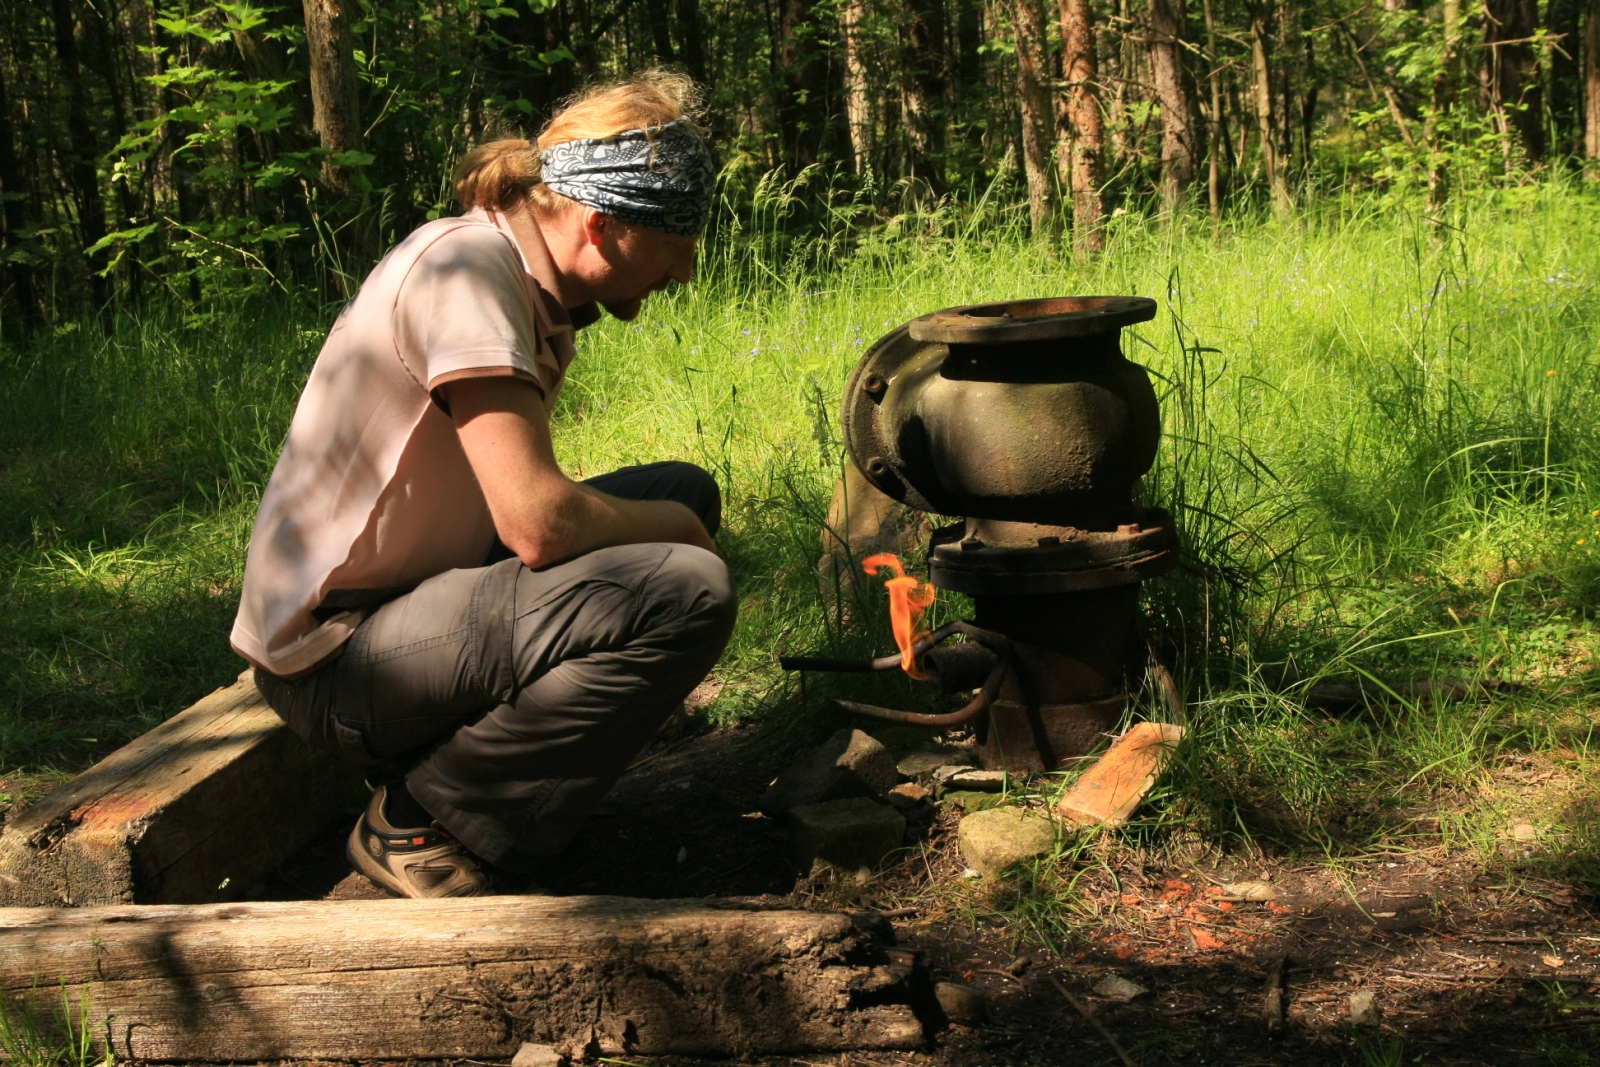 Prangli is the only place in Estonia where natural gas is found, but locals don't use it seriously